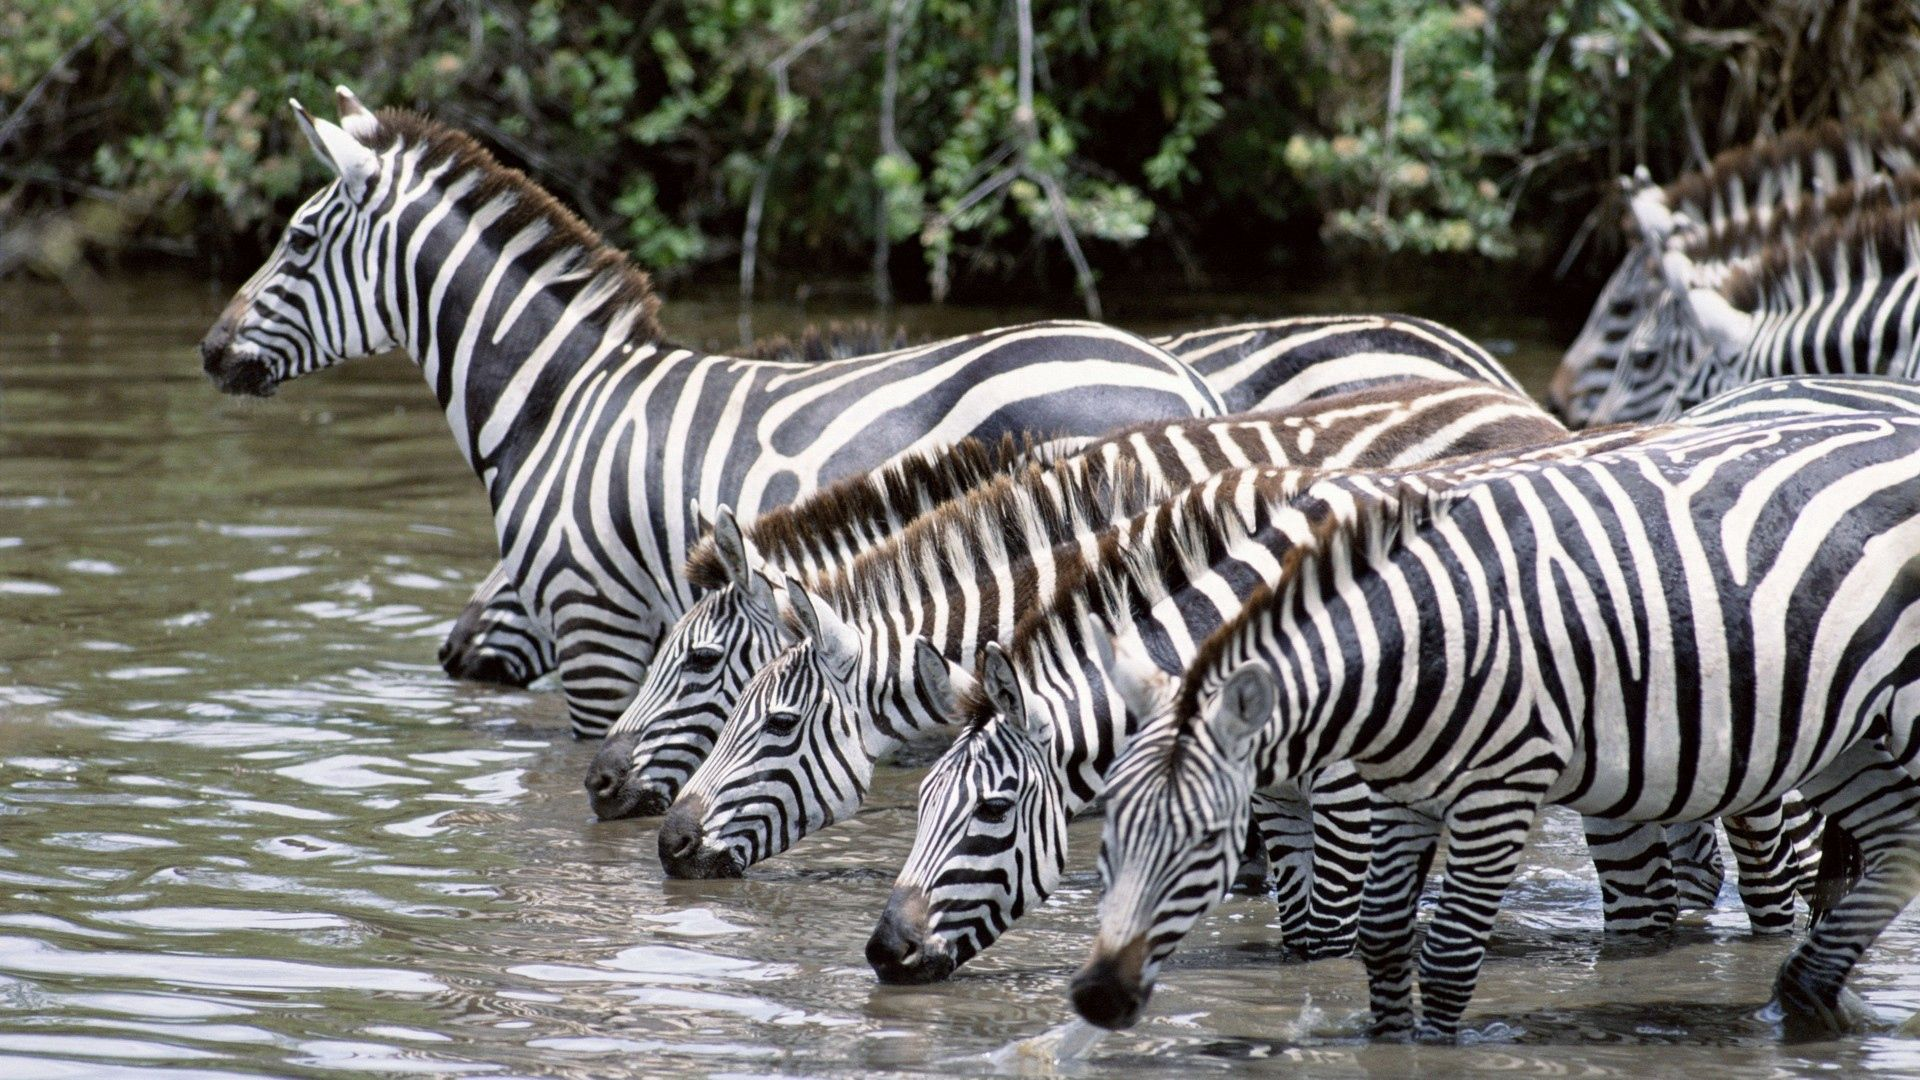 87925 download wallpaper Animals, Water, Drink, Thirst, Herd, Zebra screensavers and pictures for free